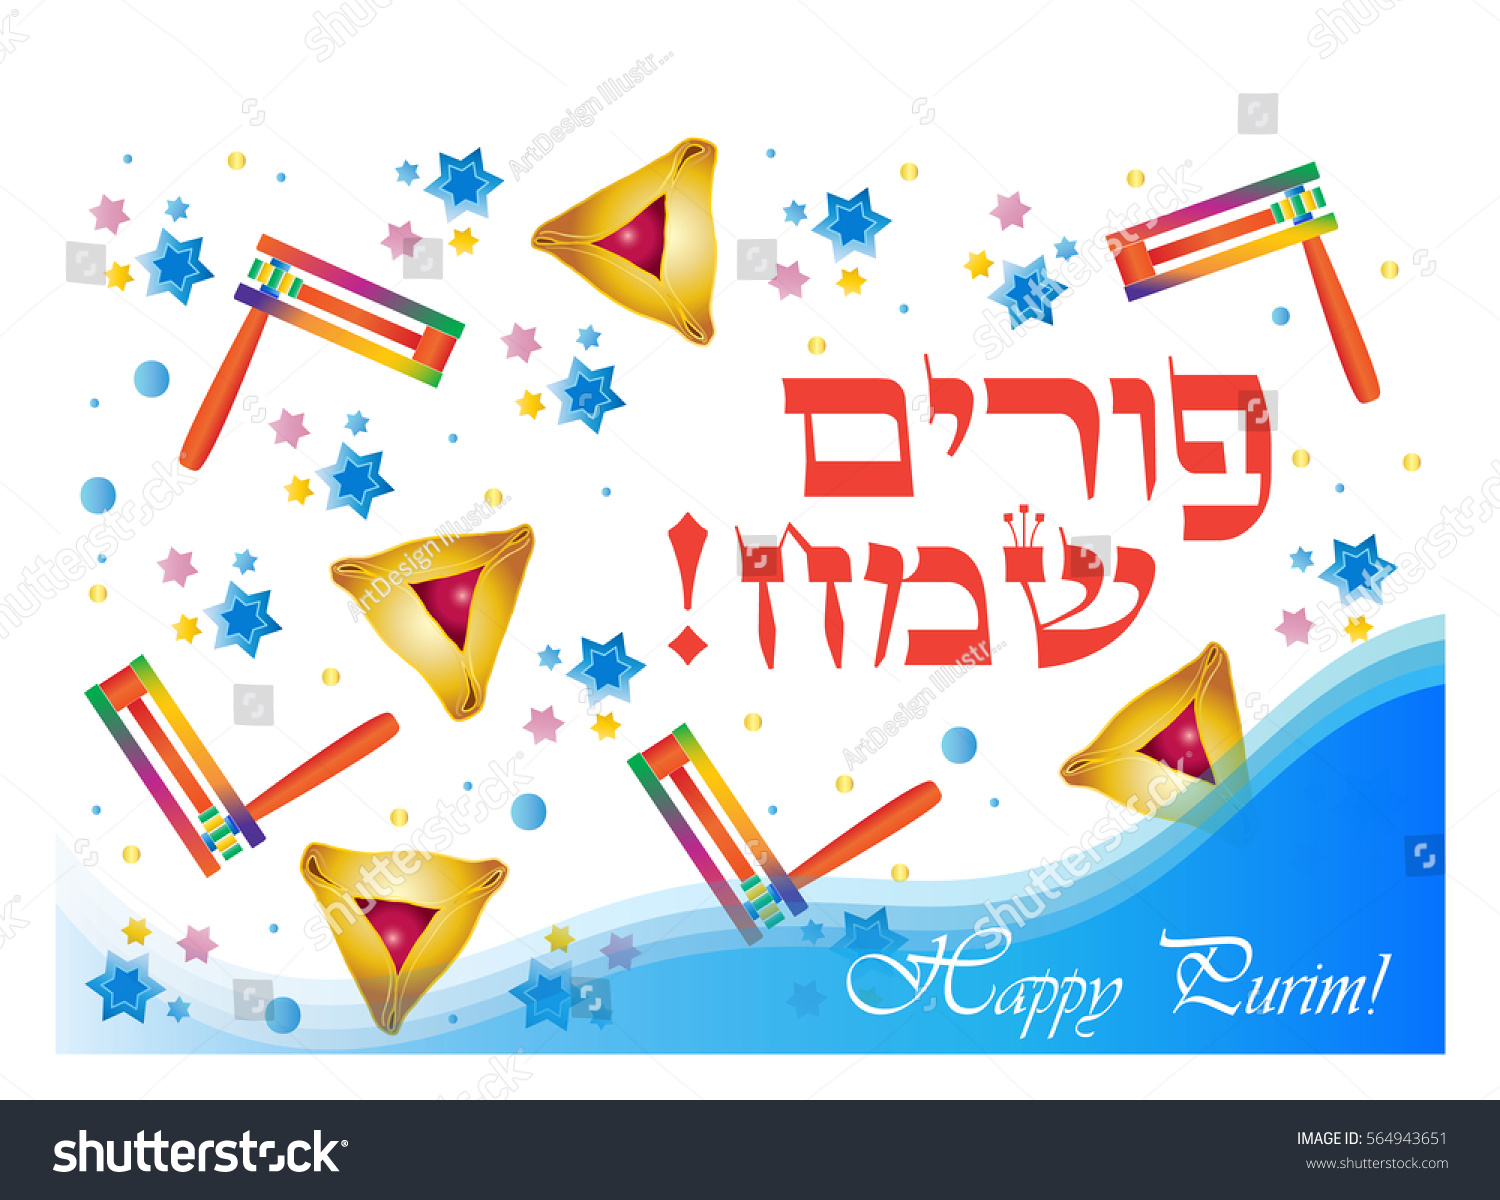 Greeting cards to Purim in Hebrew 34